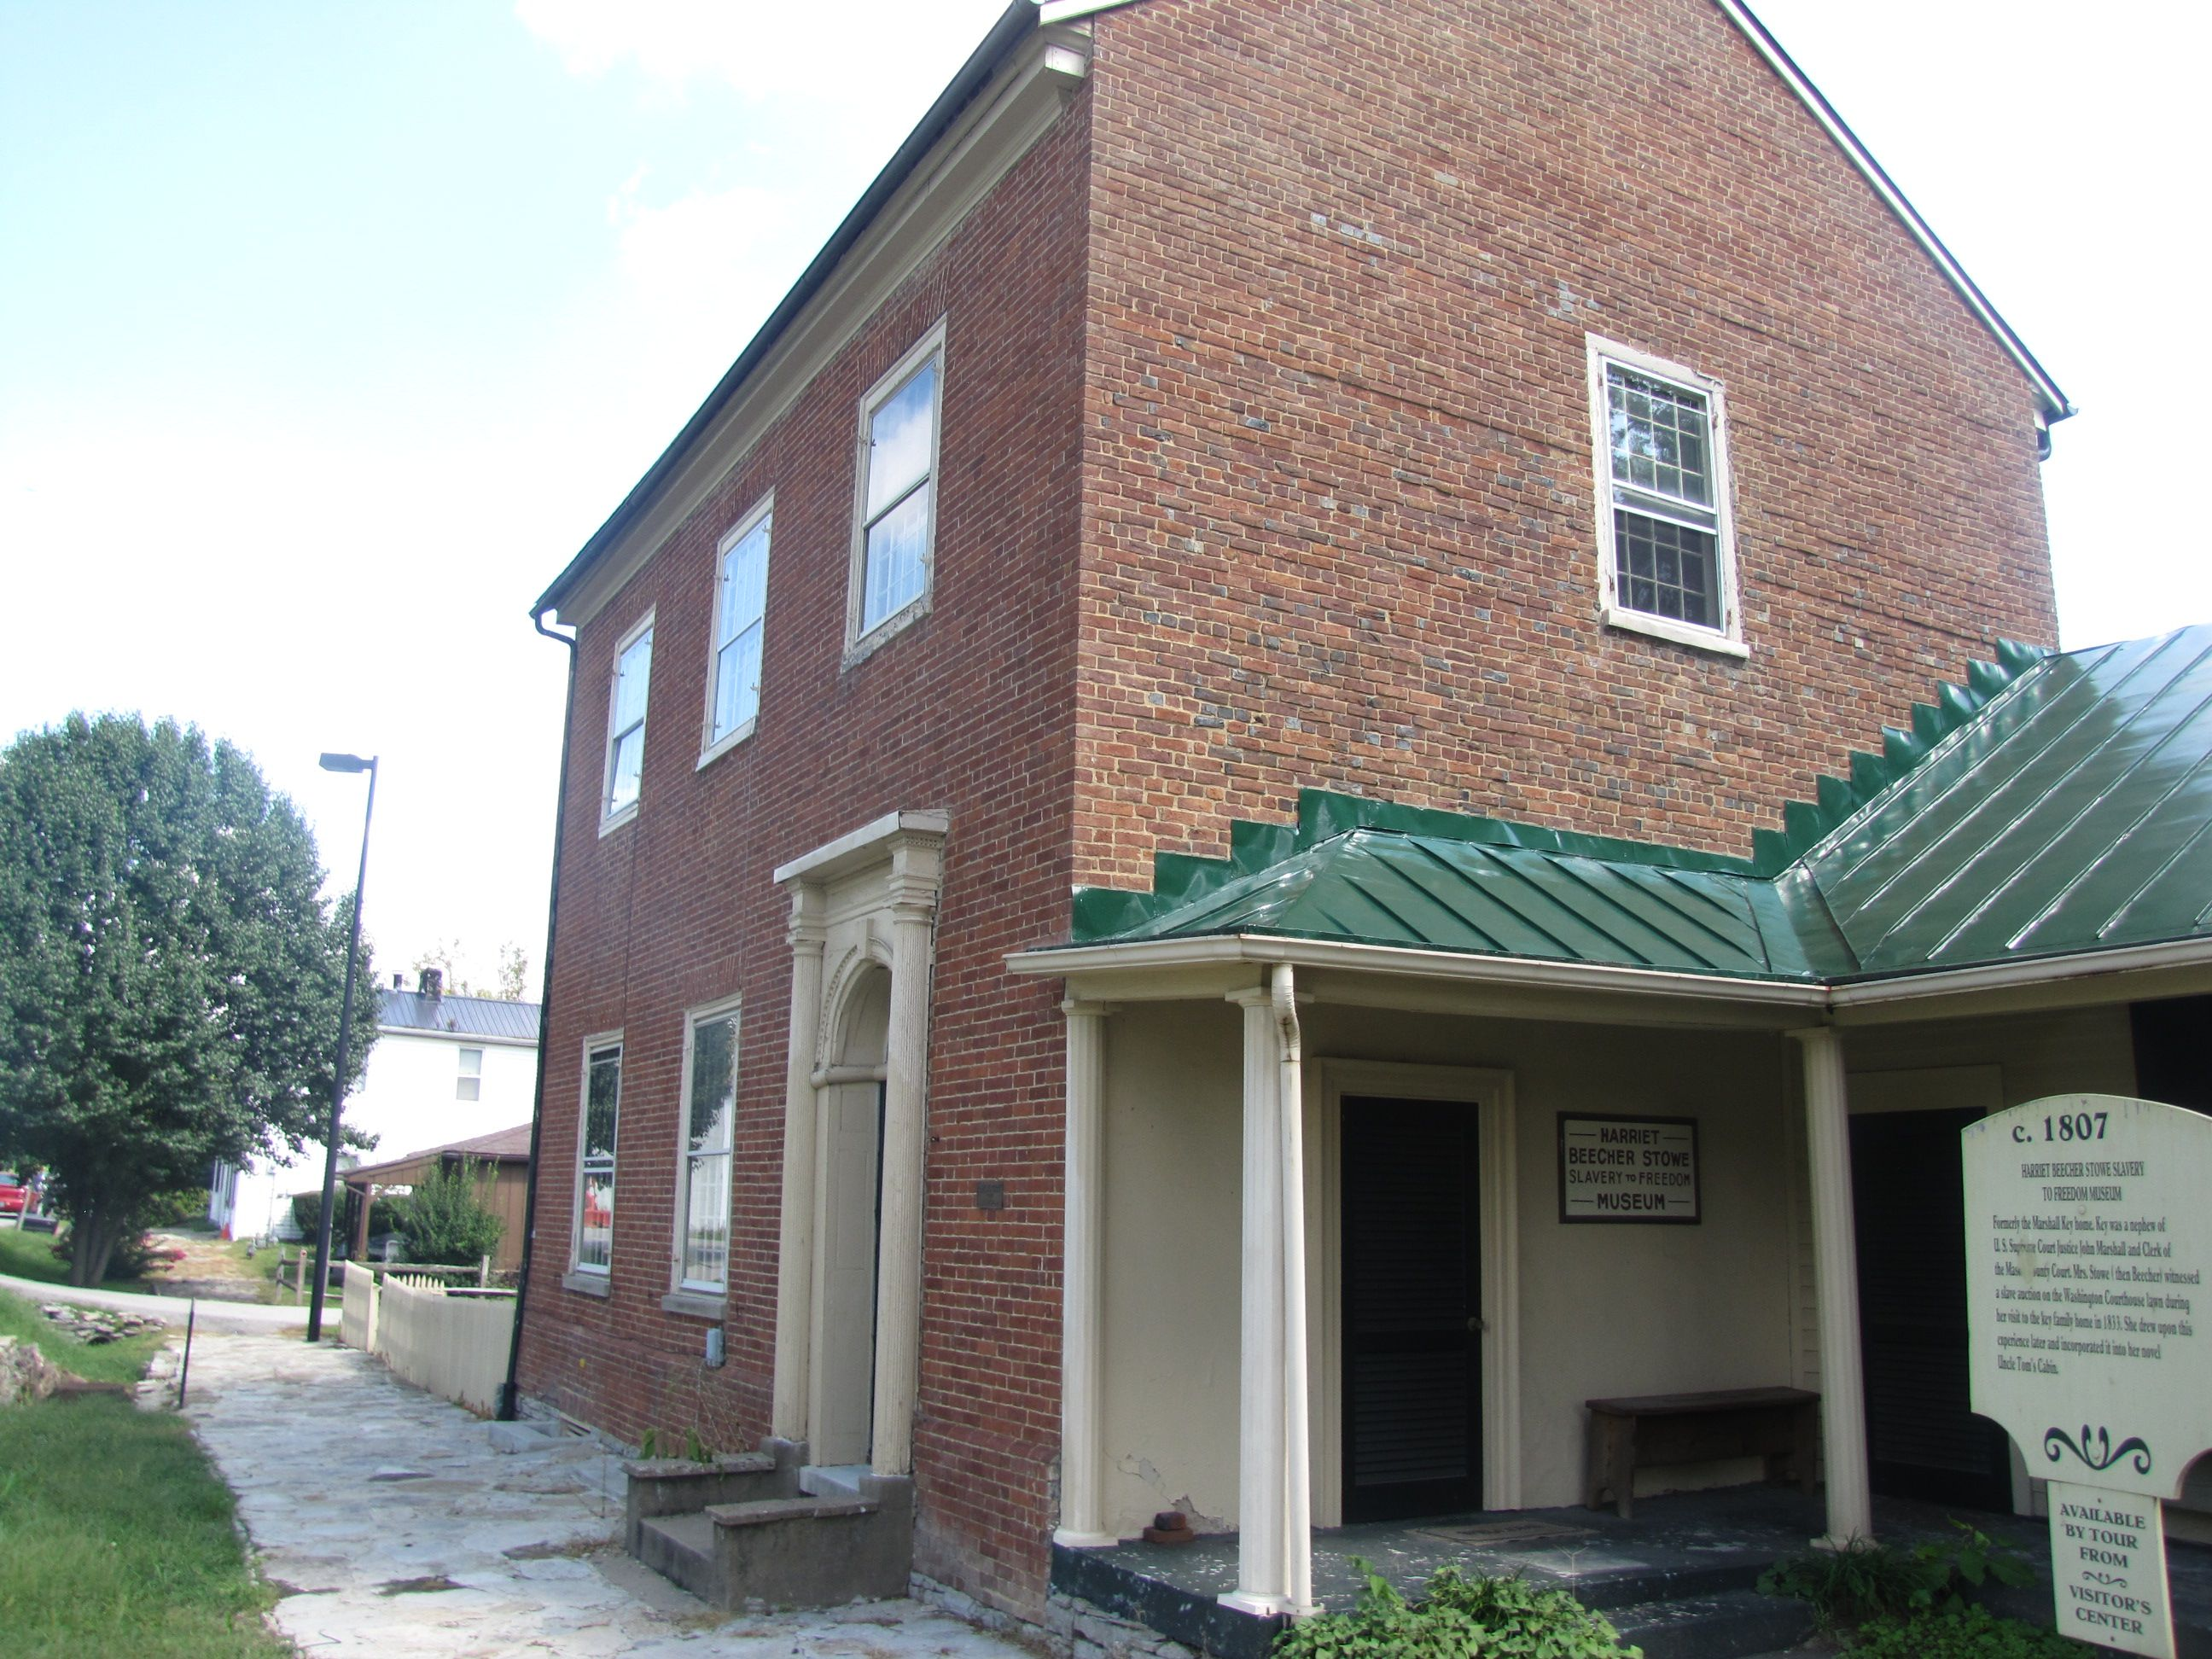 """Th Marshall Keys house in Washington, KY. IN 1830, while visiting here from Cincinnati, Harriet Beecher (Stowe) witnessed a slave auction at the nearby courthouse. Her experience eventually wound up in her book, """"Uncle Tom's Cabin""""."""